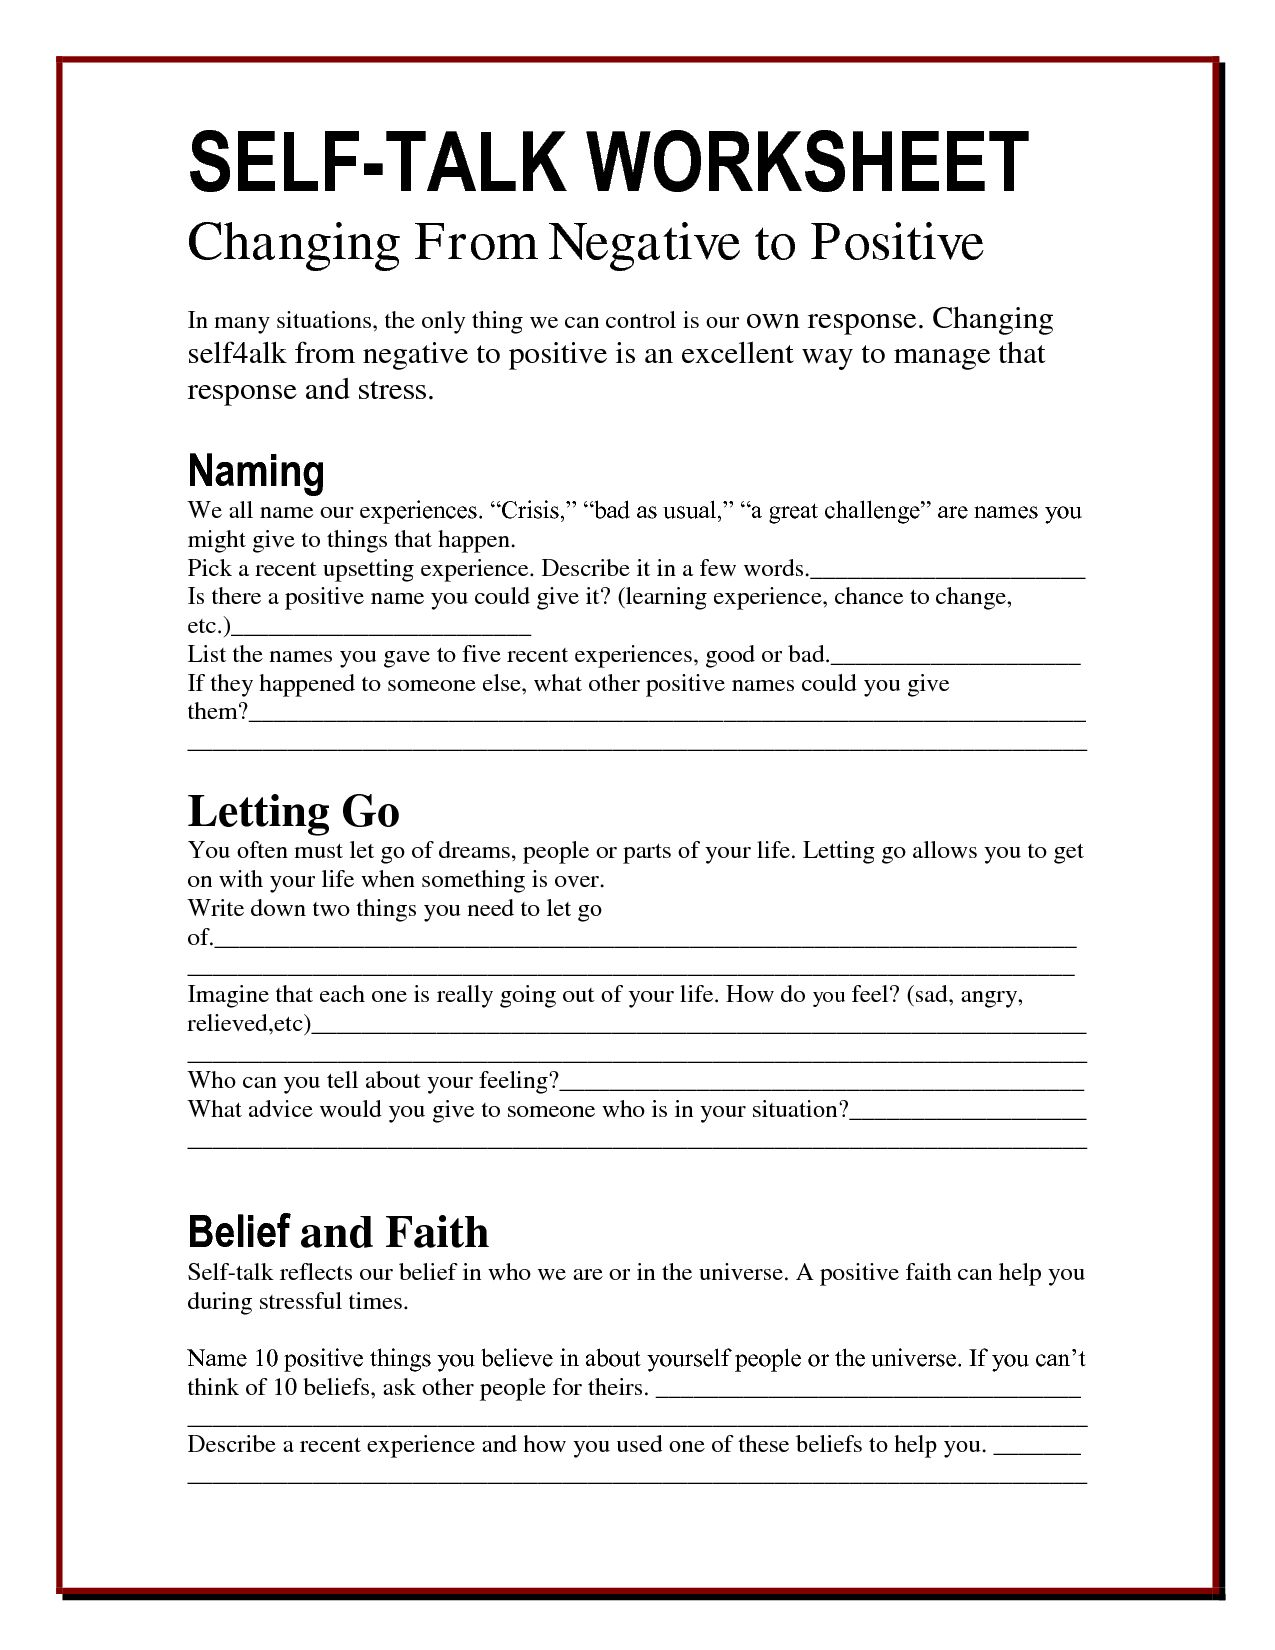 Printables Mental Health Worksheets introduction to anxiety preview counseling pinterest image from httpimg docstoccdn comthumborig worksheets